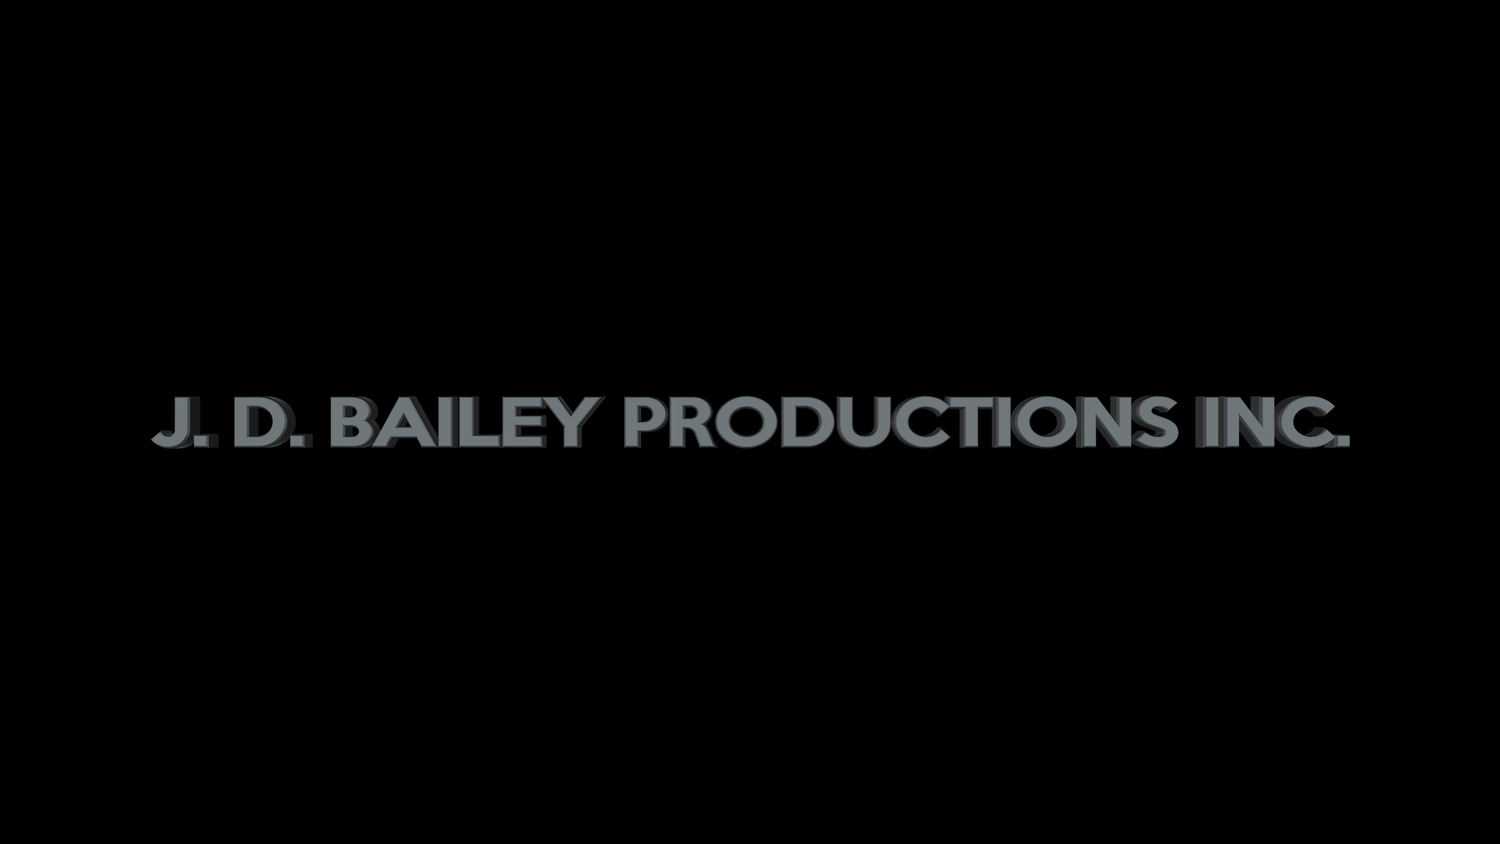 JDBaileyproductions Inc.